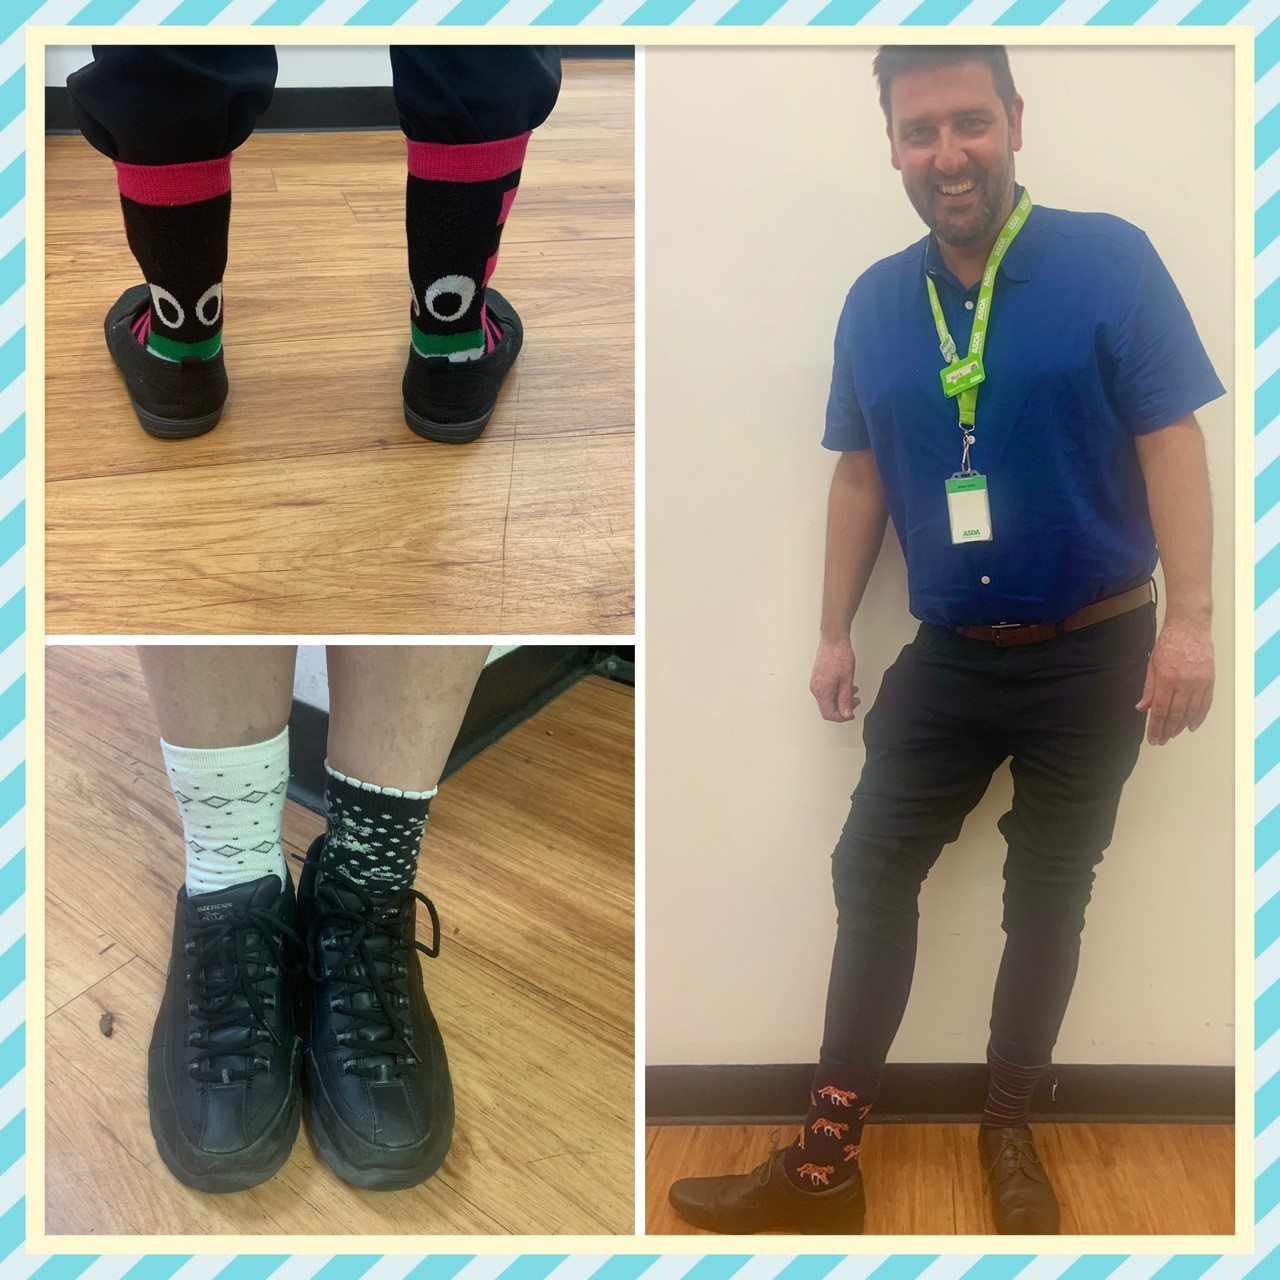 Silly Sock Saturday at Asda Sittingbourne | Asda Sittingbourne